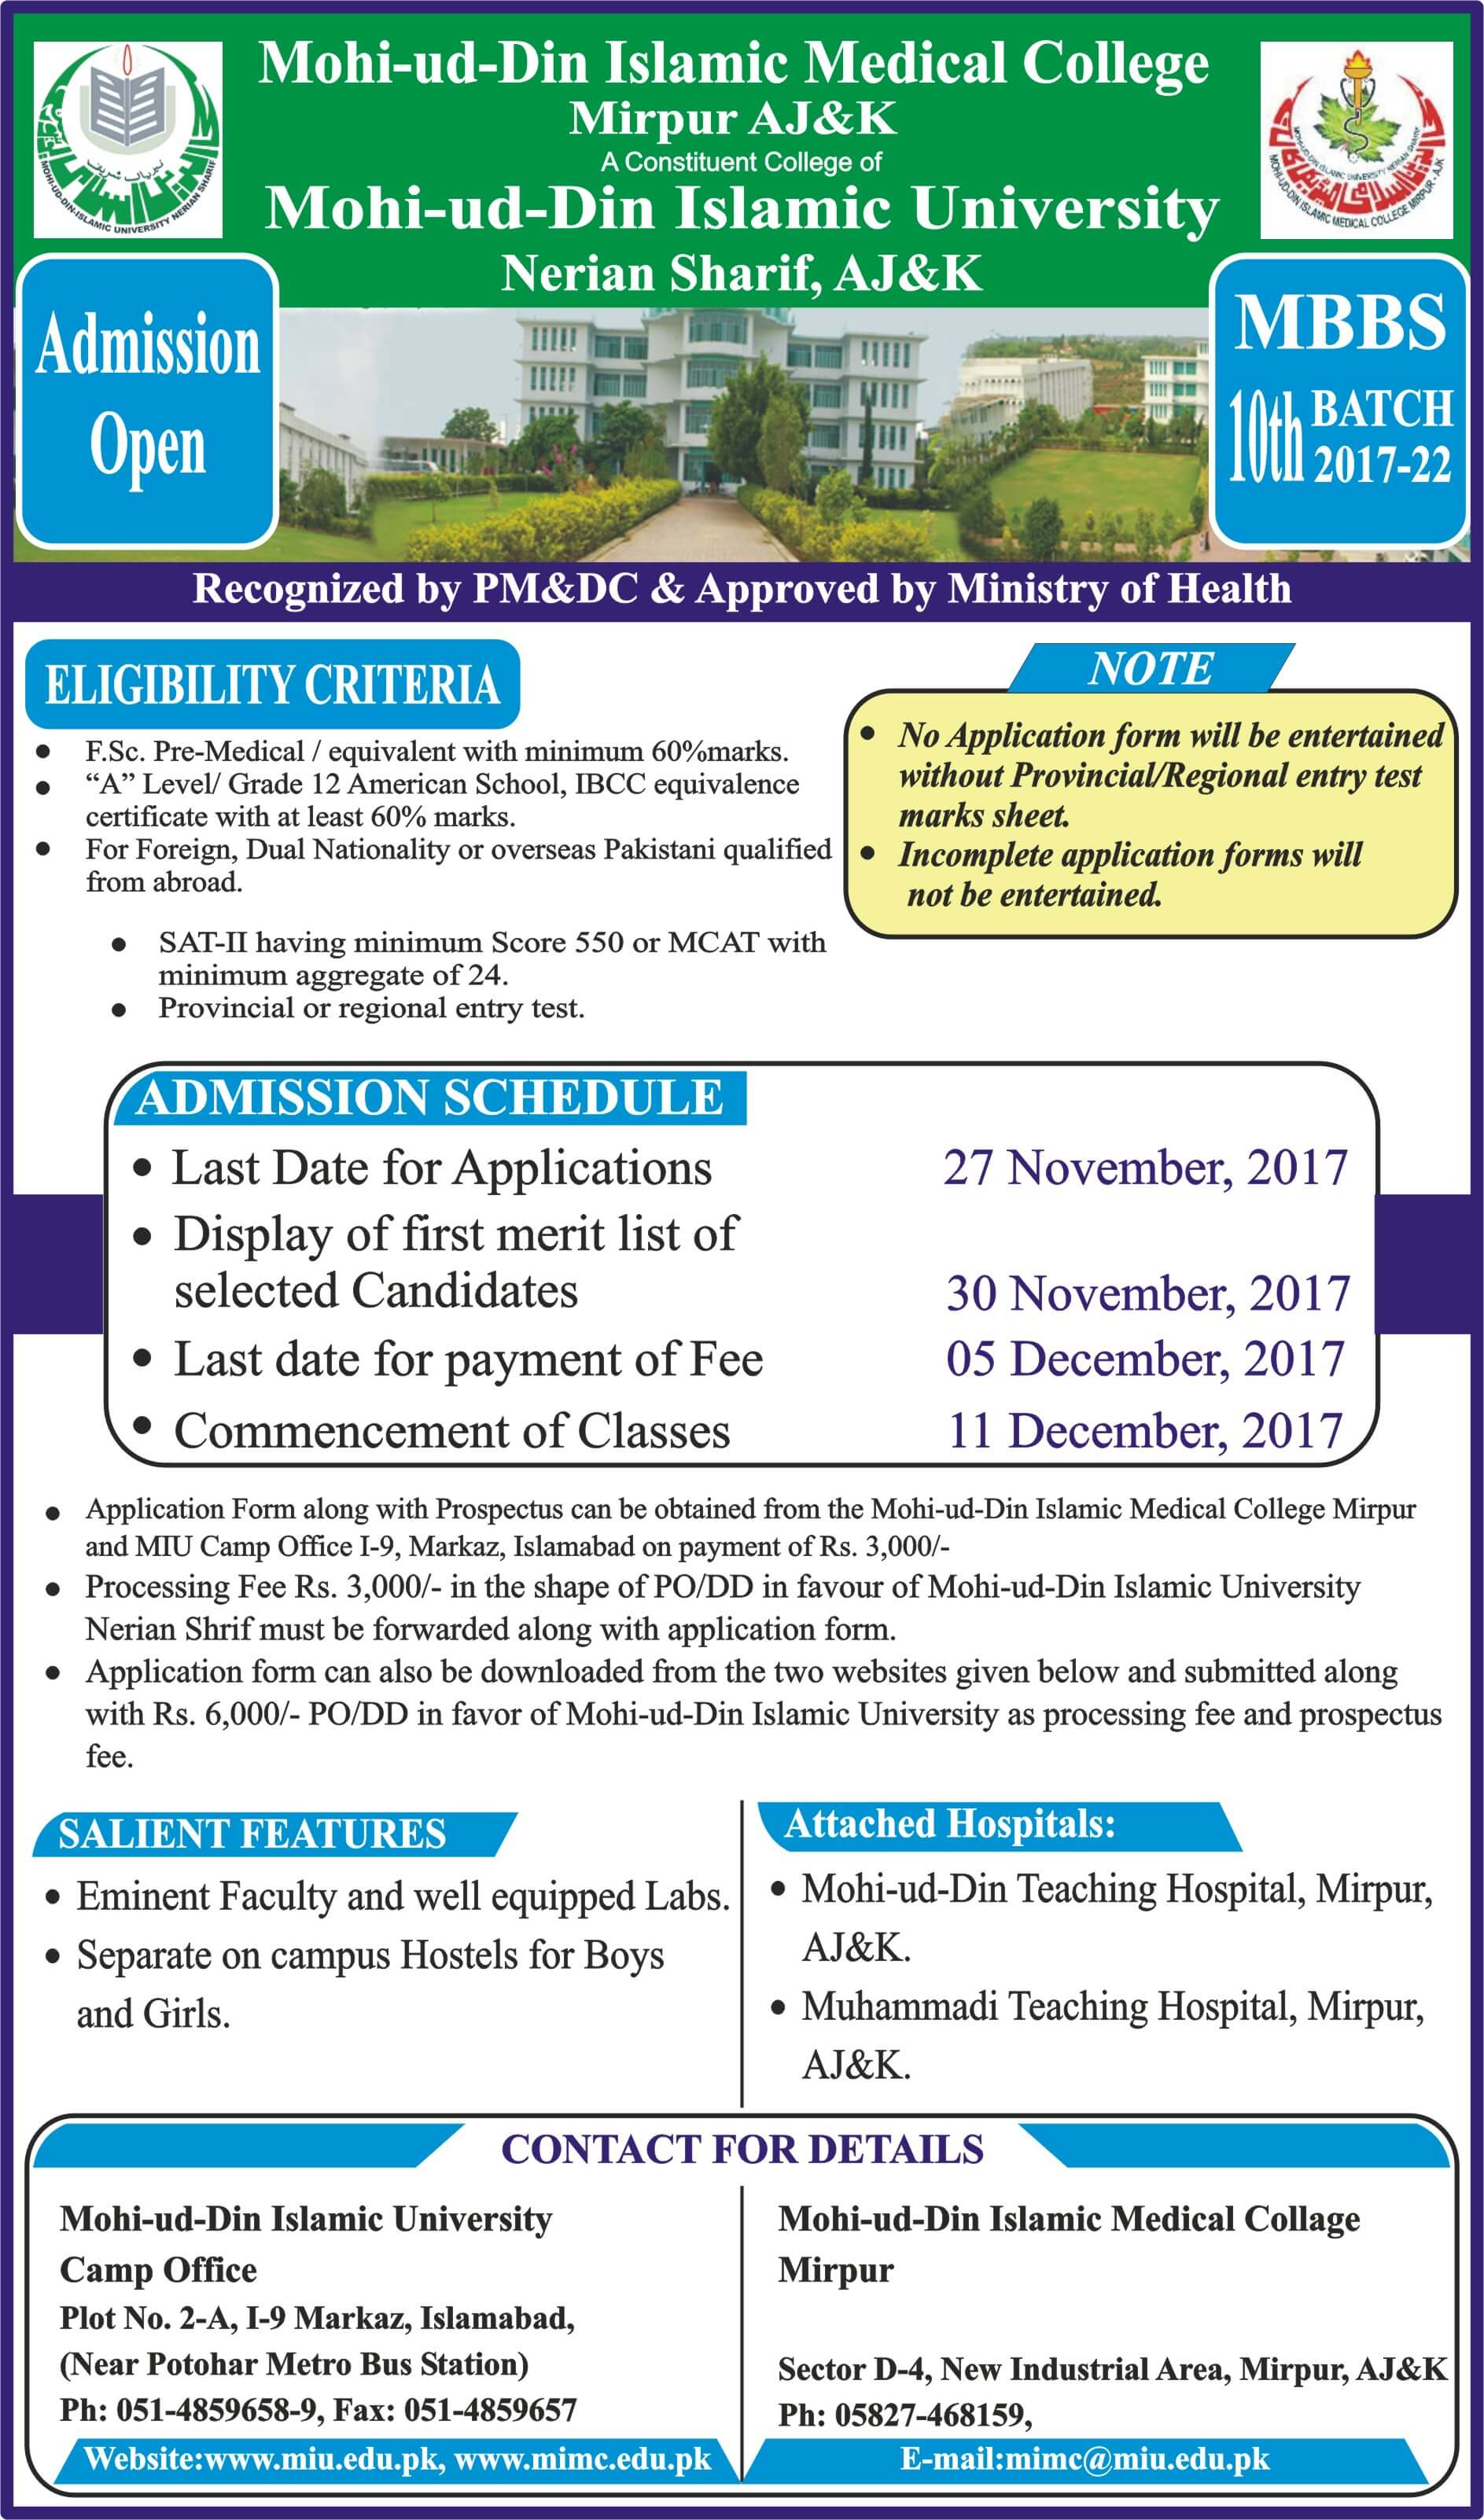 Mohi-Ud-Din Islamic Medical College, Mirpur AJ&K Admissions Open 2017 – 22